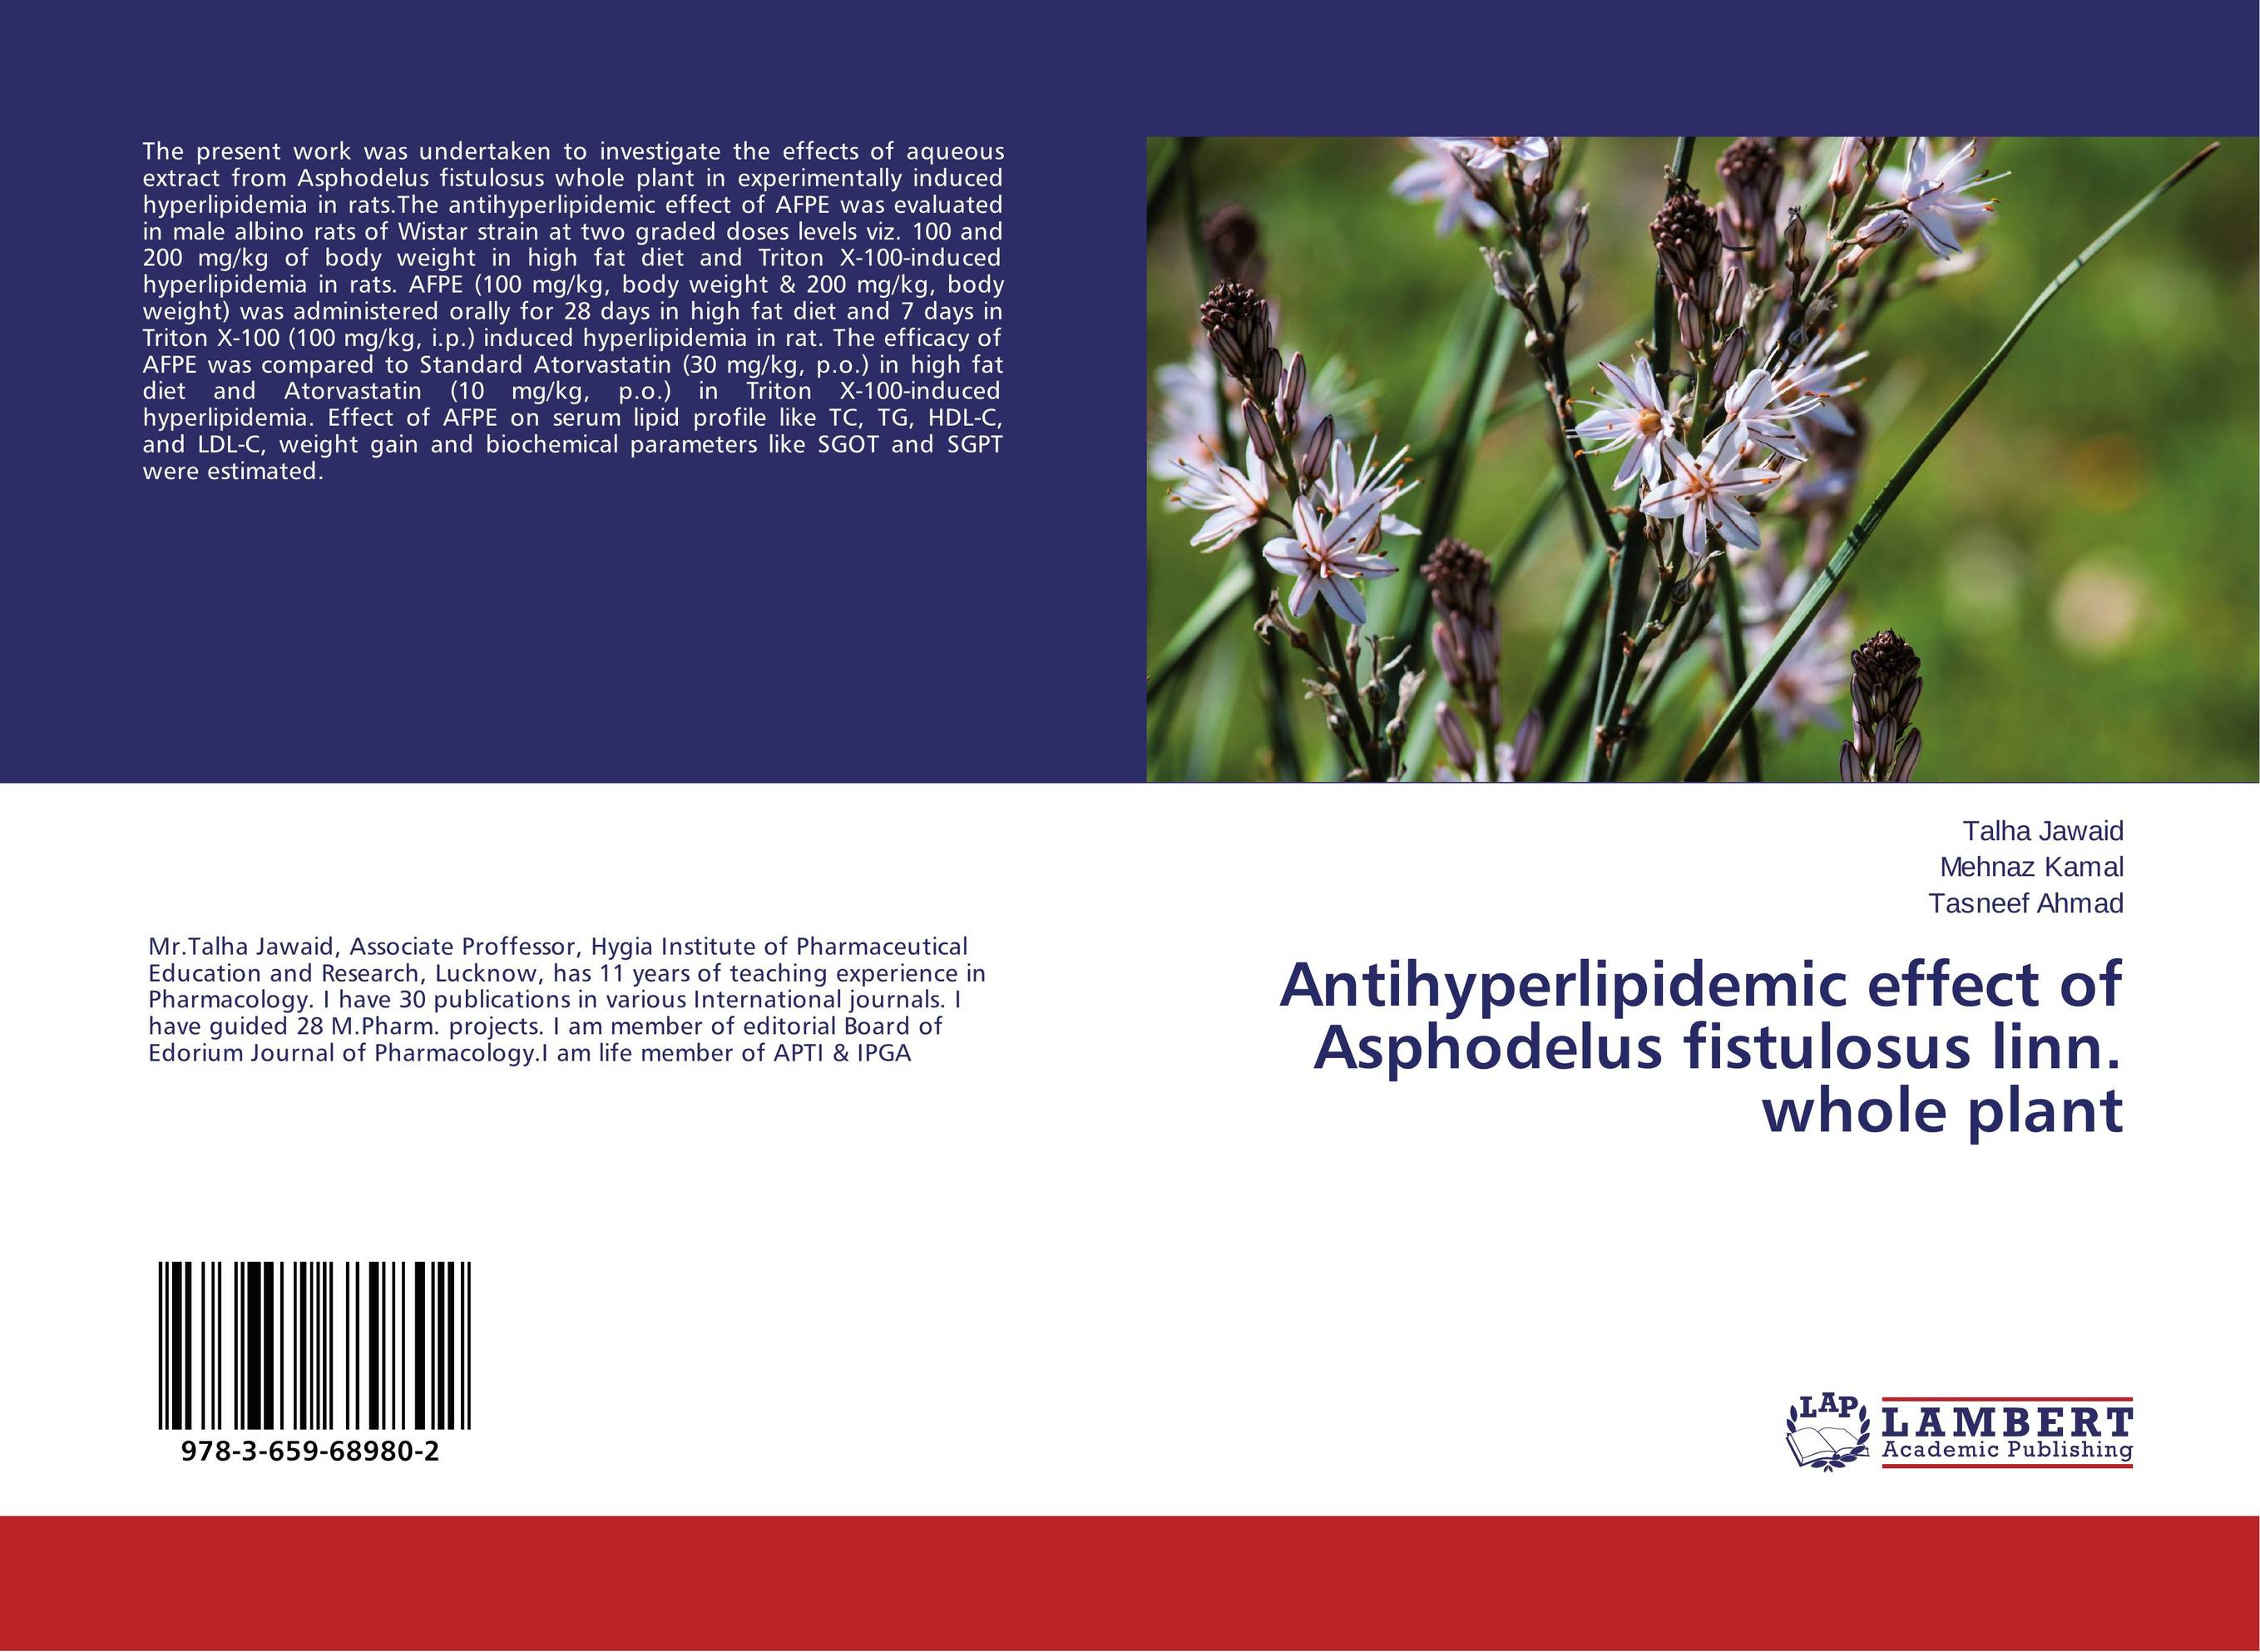 Antihyperlipidemic effect of Asphodelus fistulosus linn. whole plant personality profile and induced psychosis in alcohol dependence